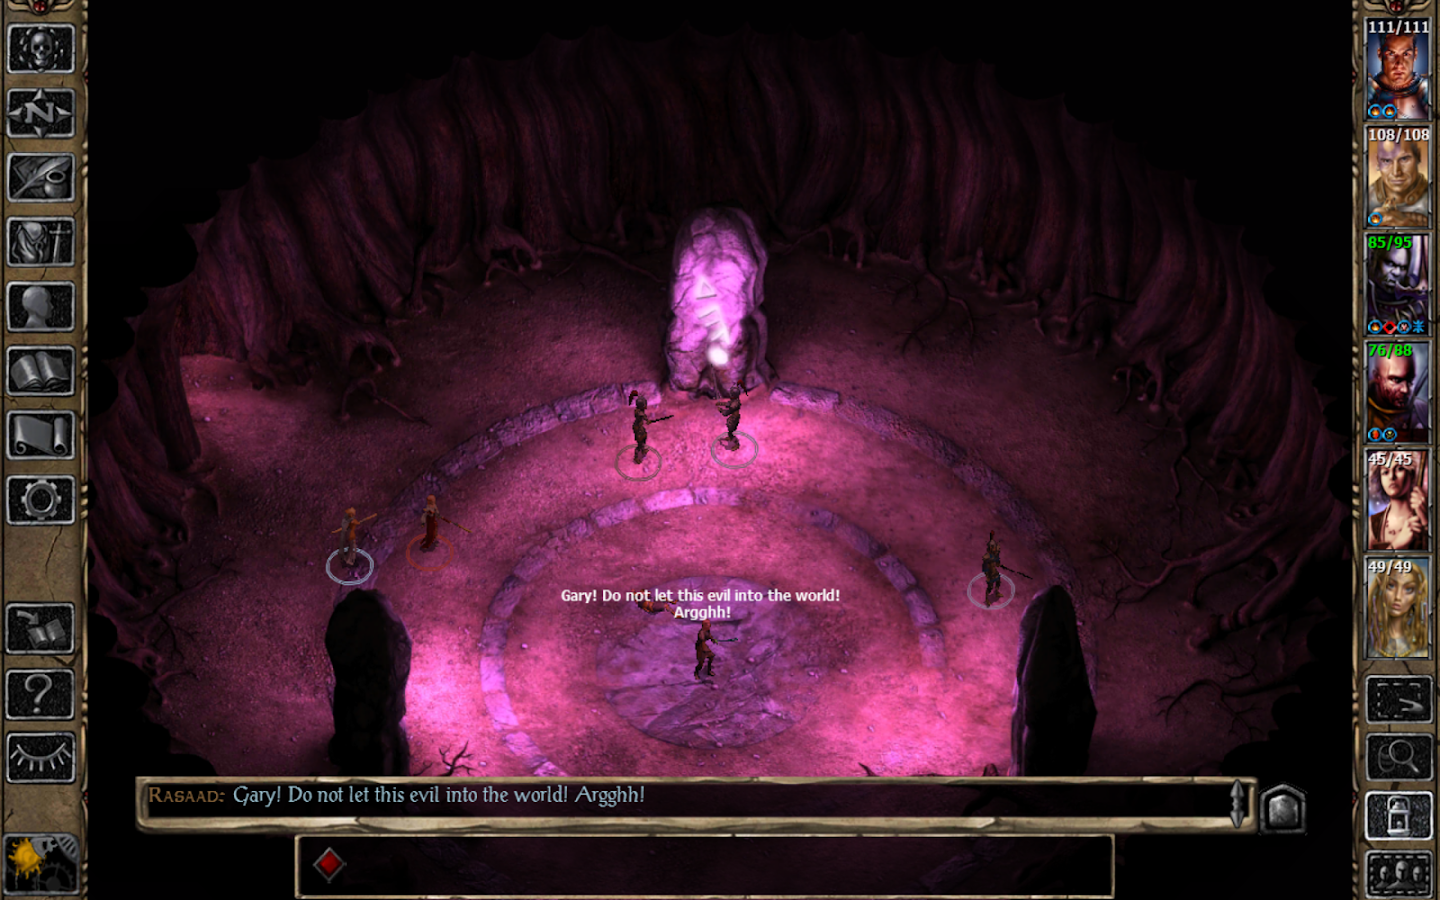 Baldur's Gate II Screenshot 13